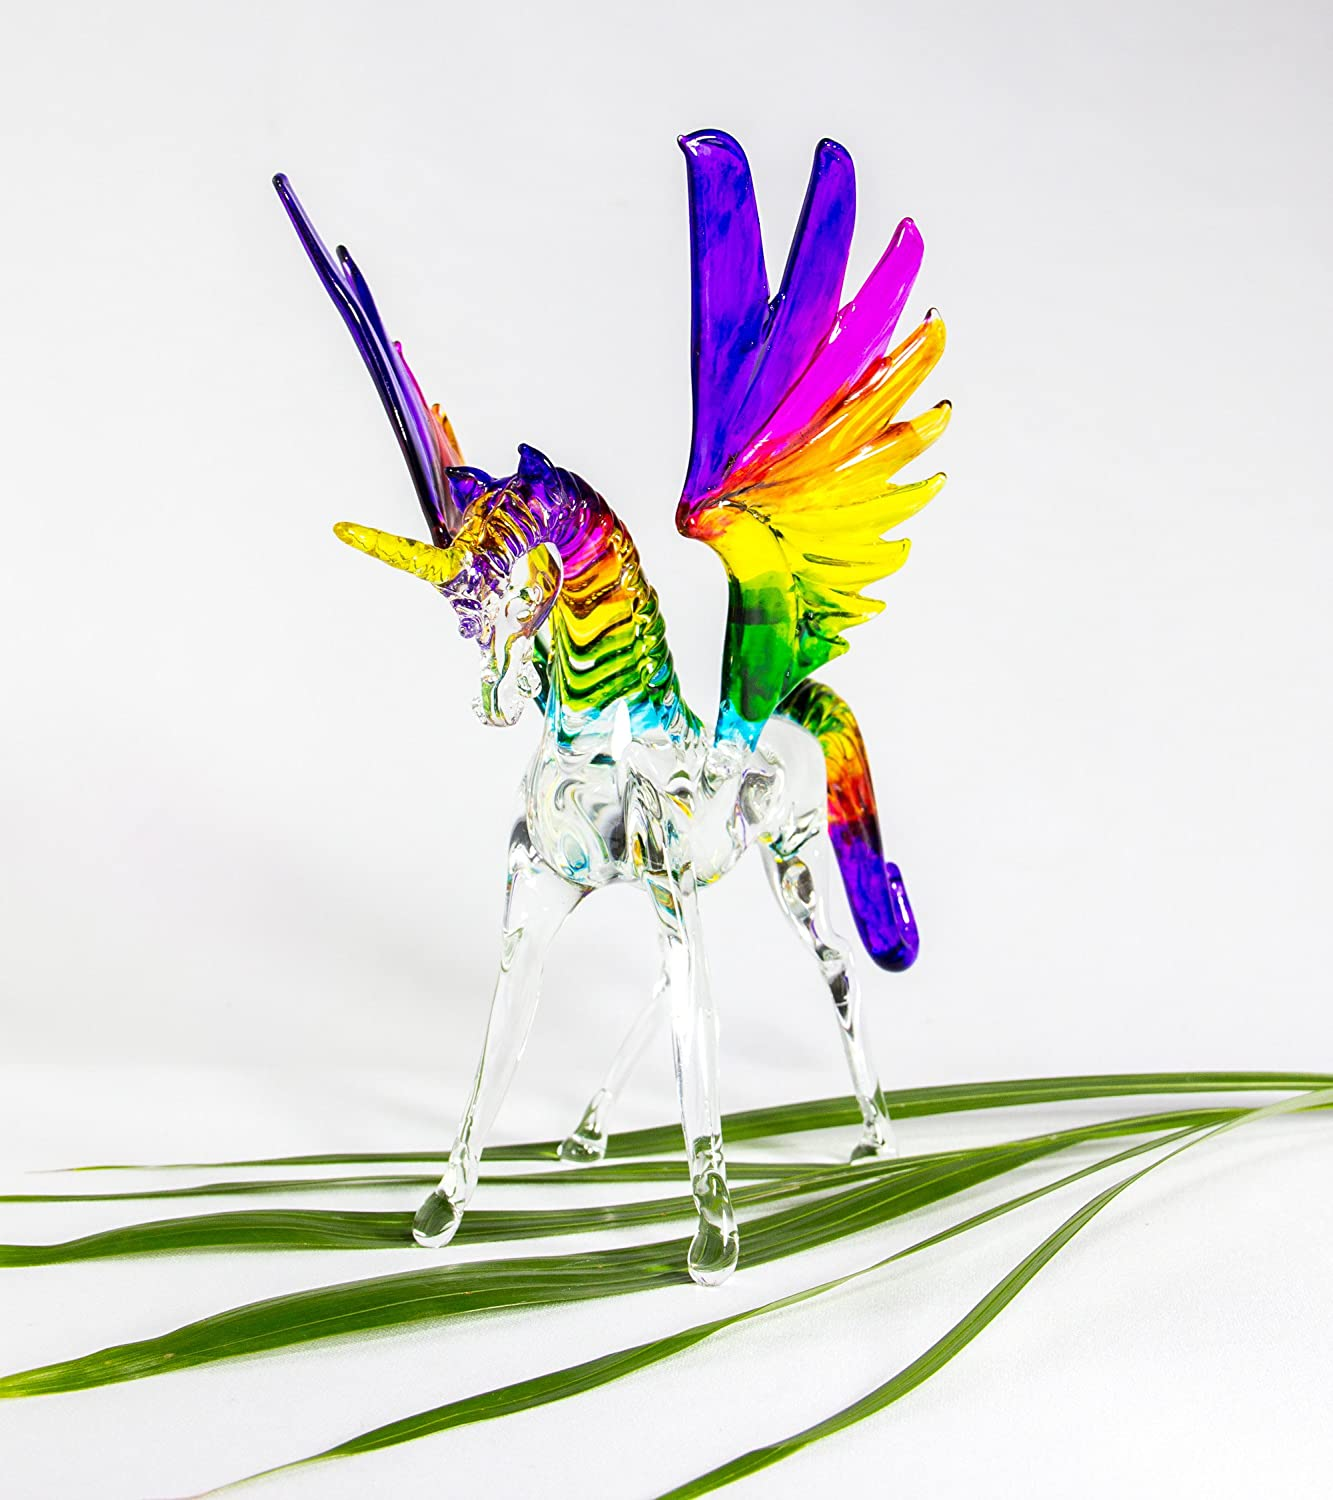 Mexicolour Unicorn Handcrafted Blown Glass Horse Pegasus Figurine Sculpture Rainbow Colors LGBT